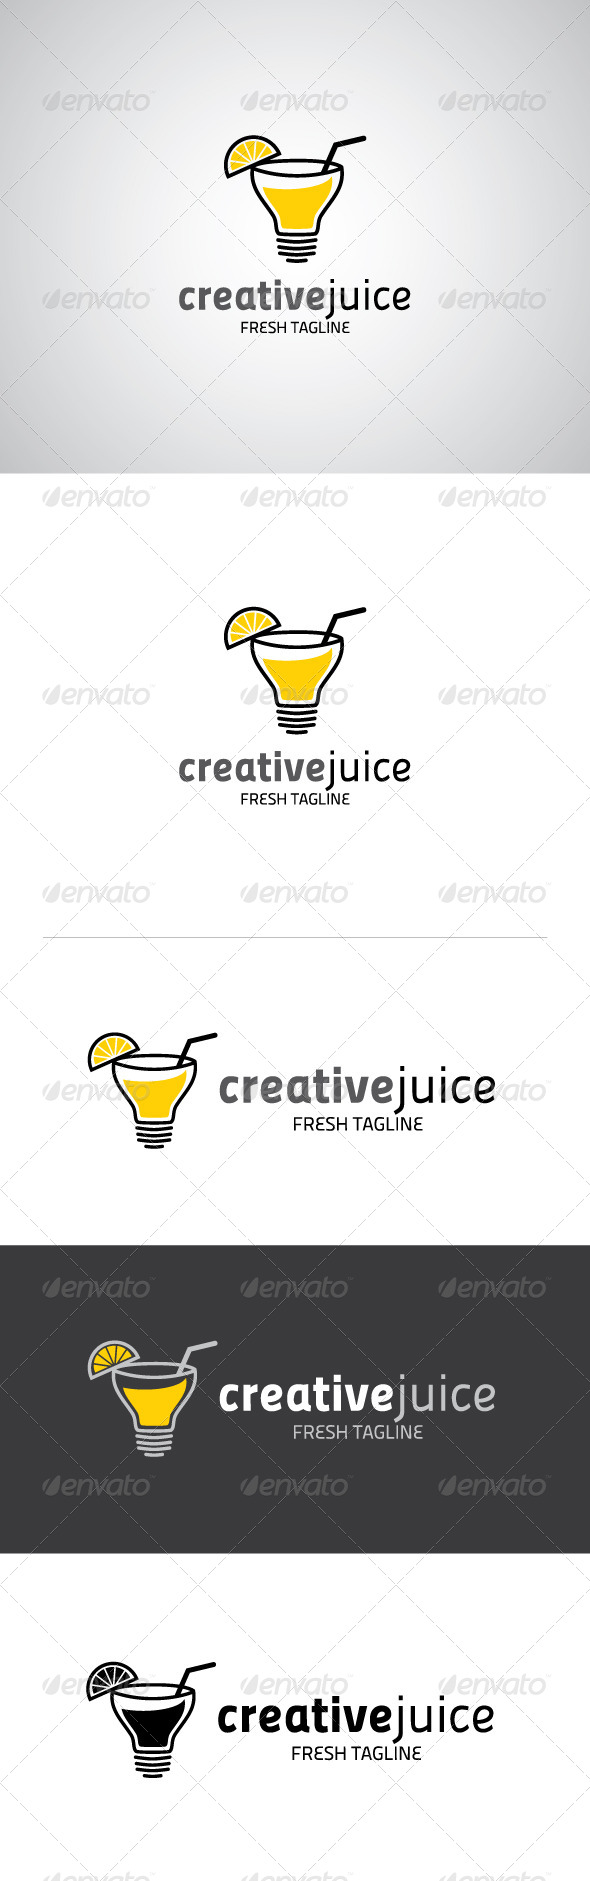 GraphicRiver Creative Juice Logo 5323225